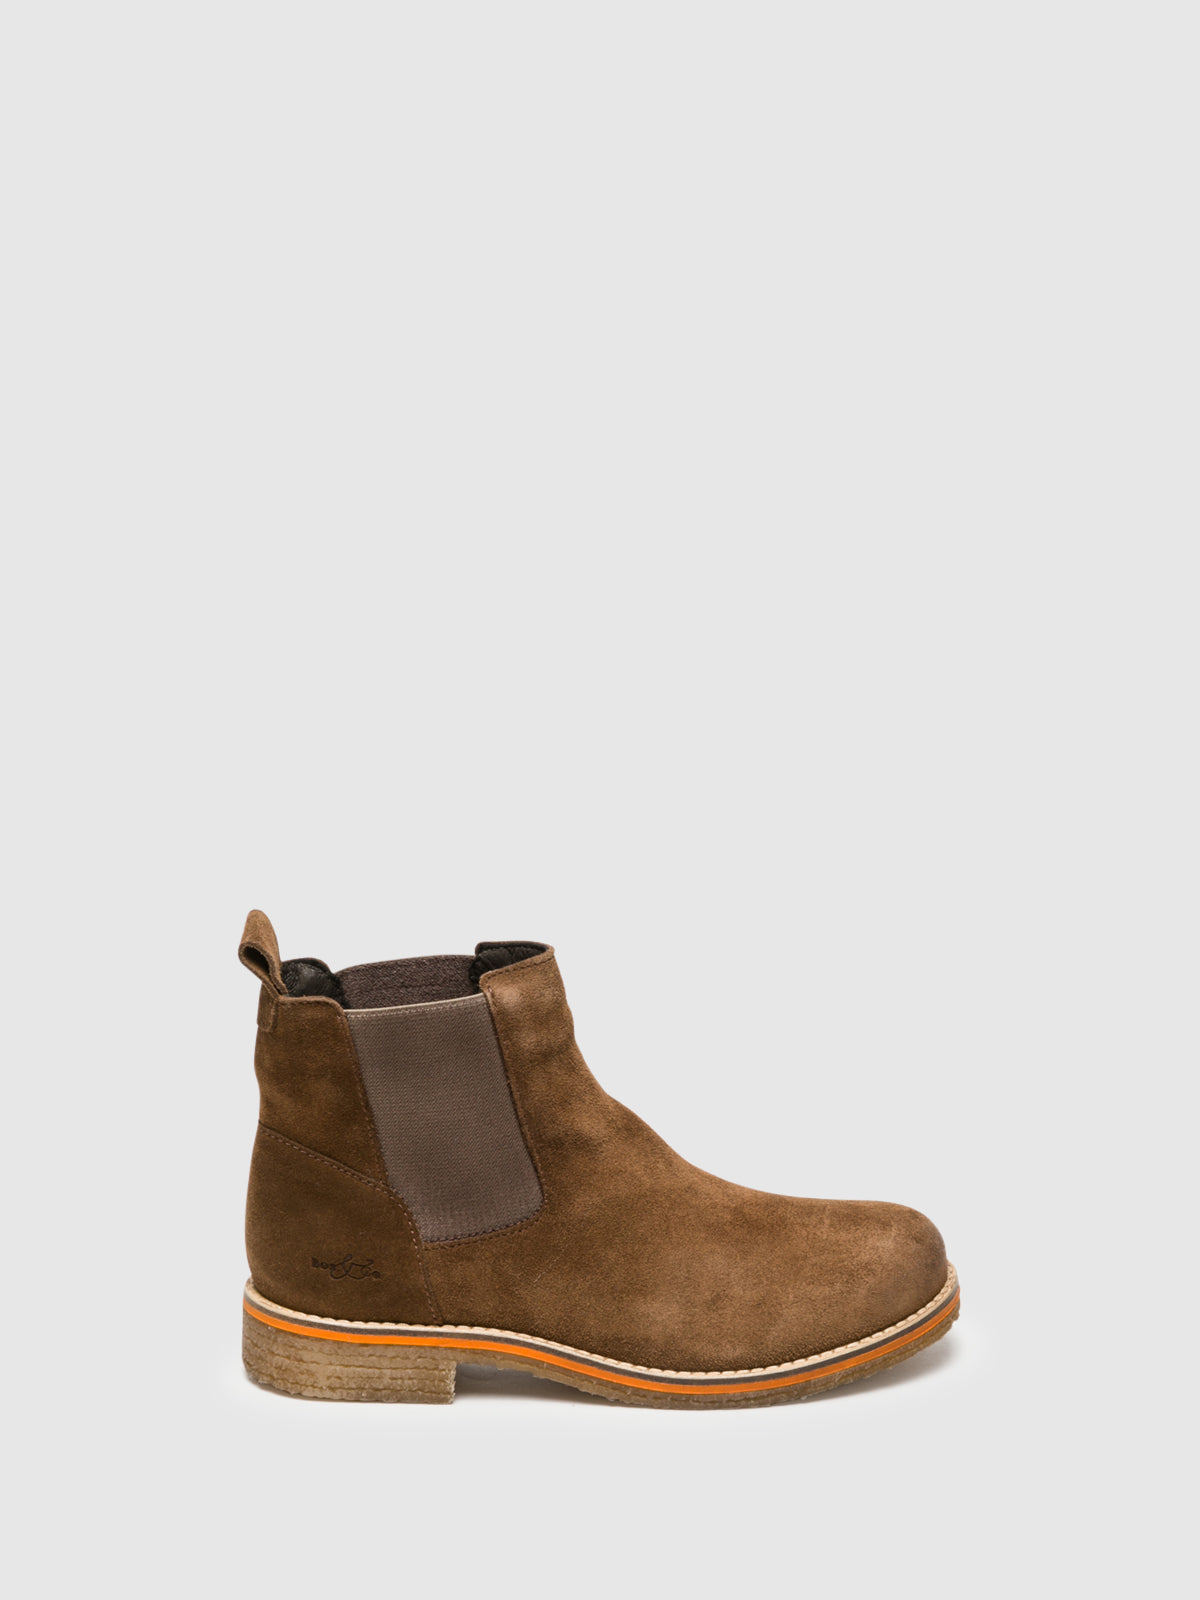 Bos&Co SaddleBrown Chelsea Ankle Boots